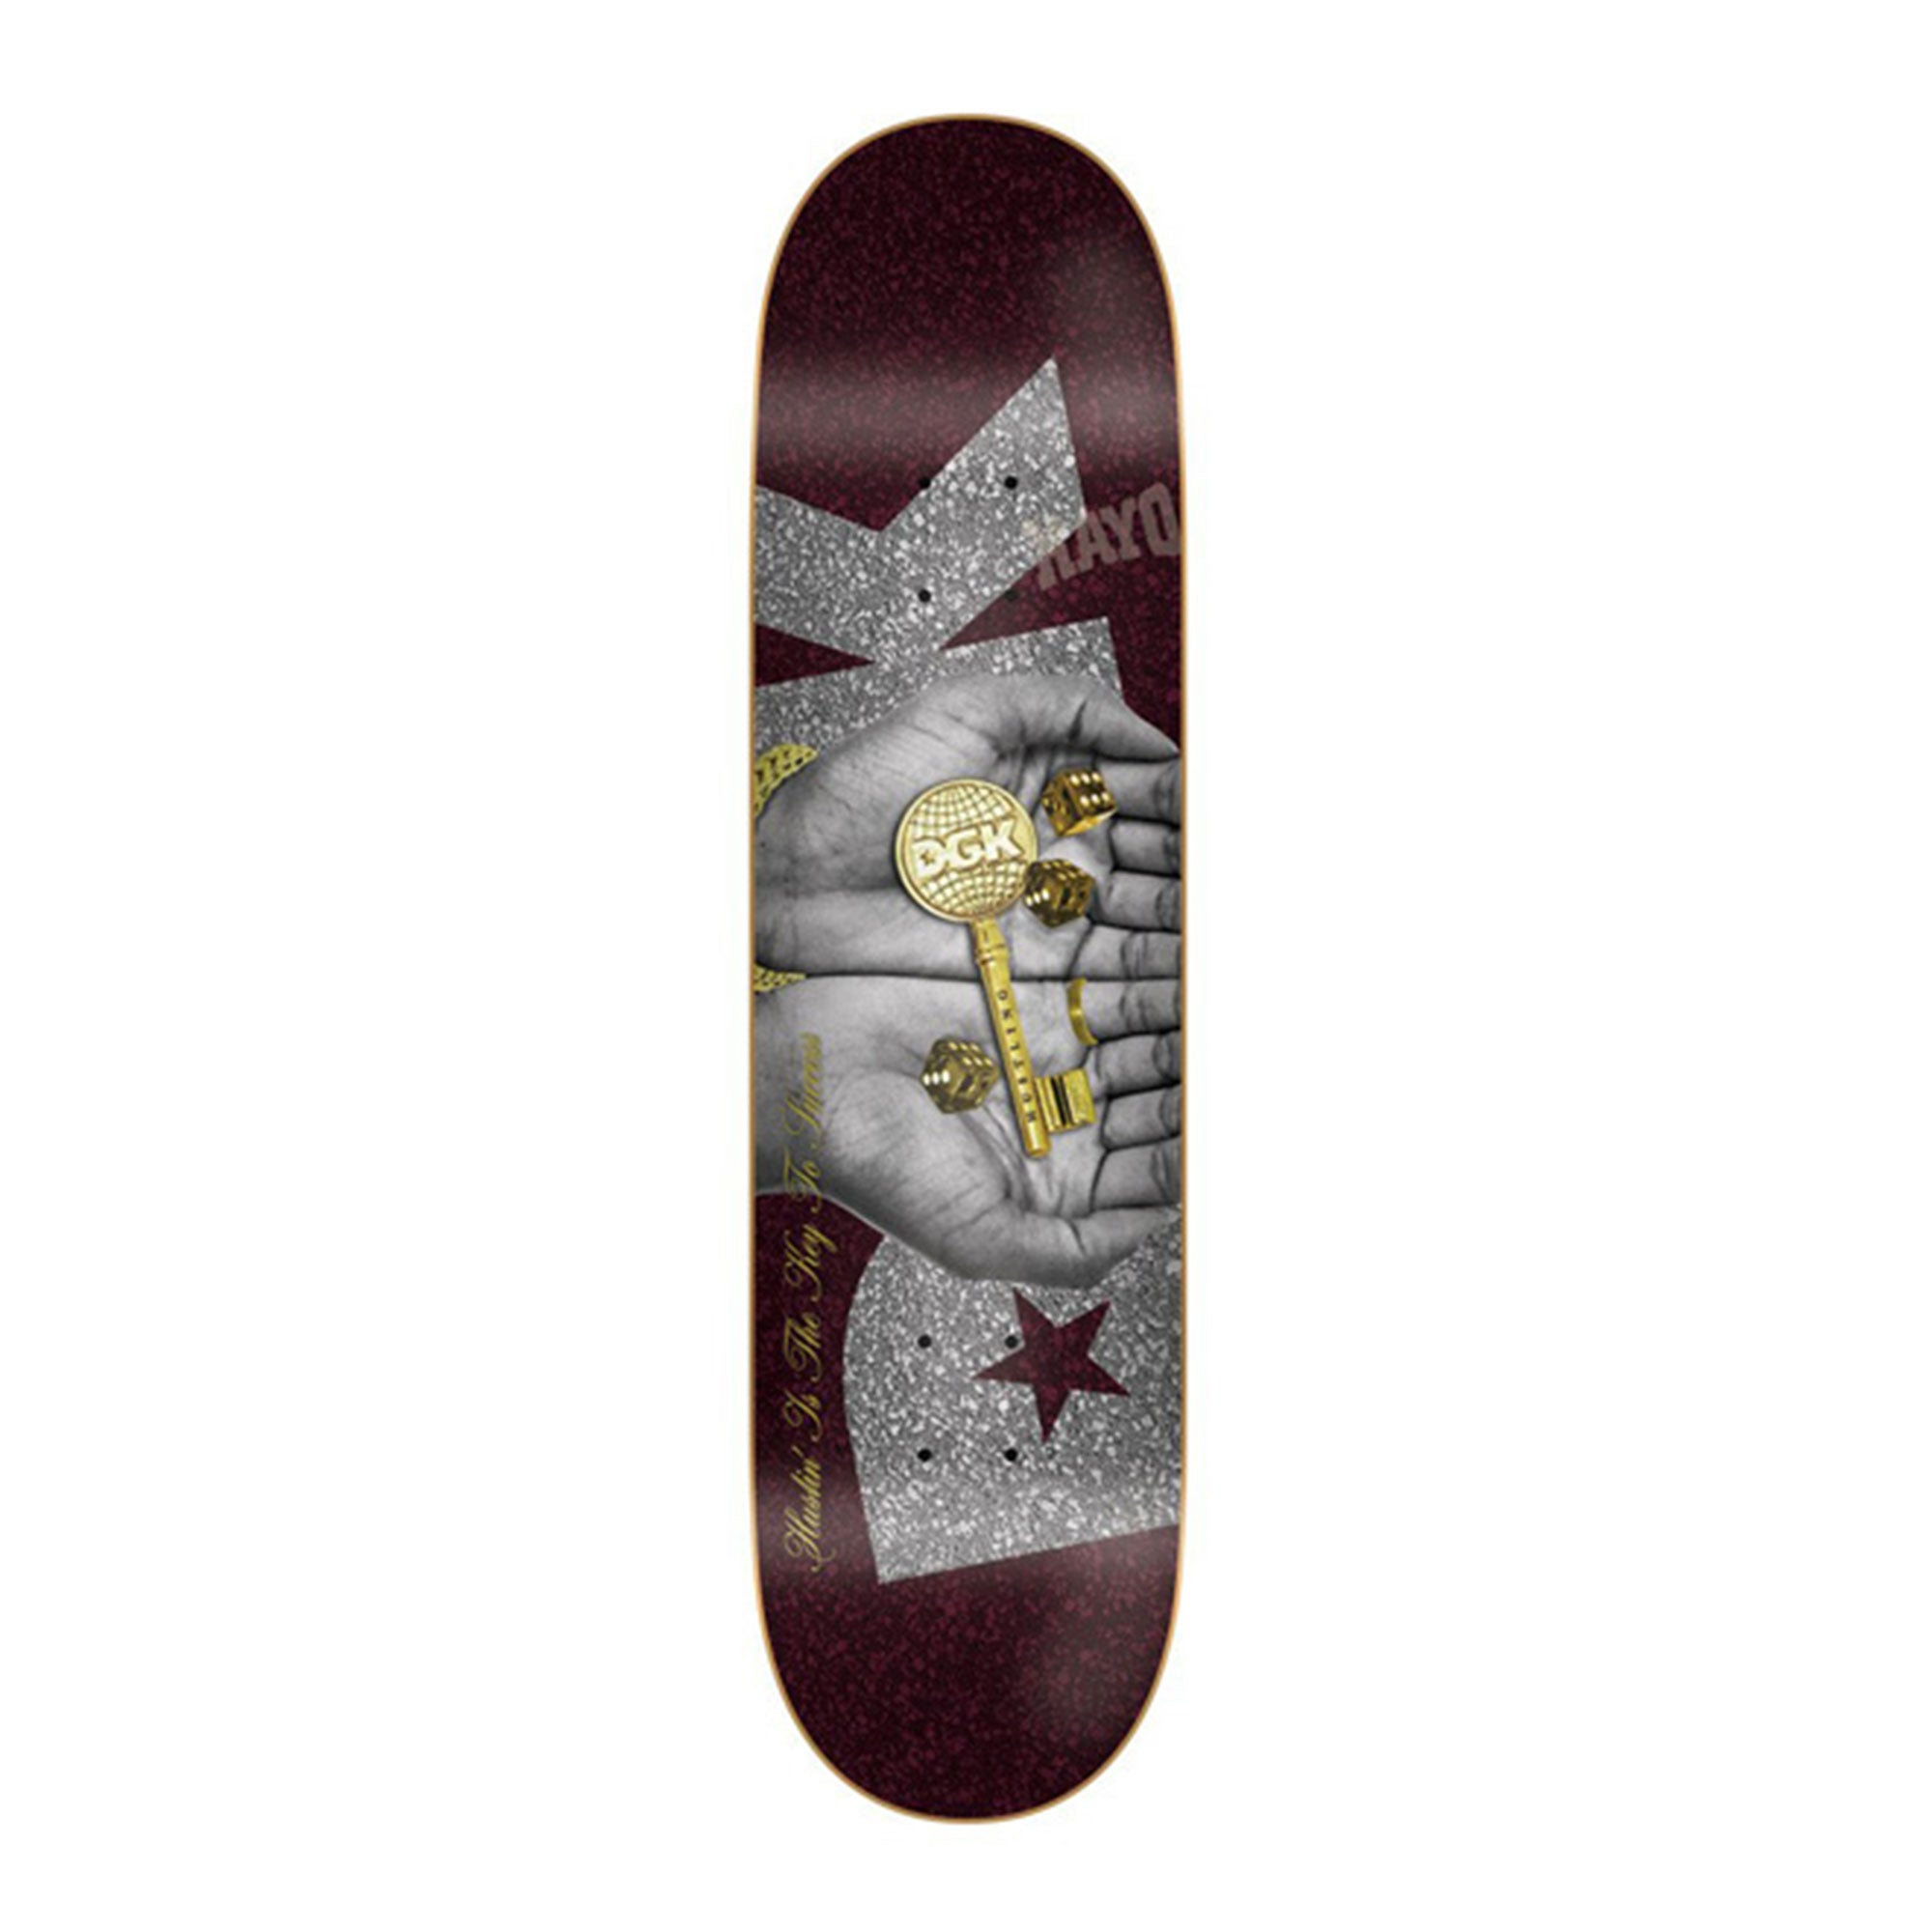 DGK Prosperity Deck Product Photo #1